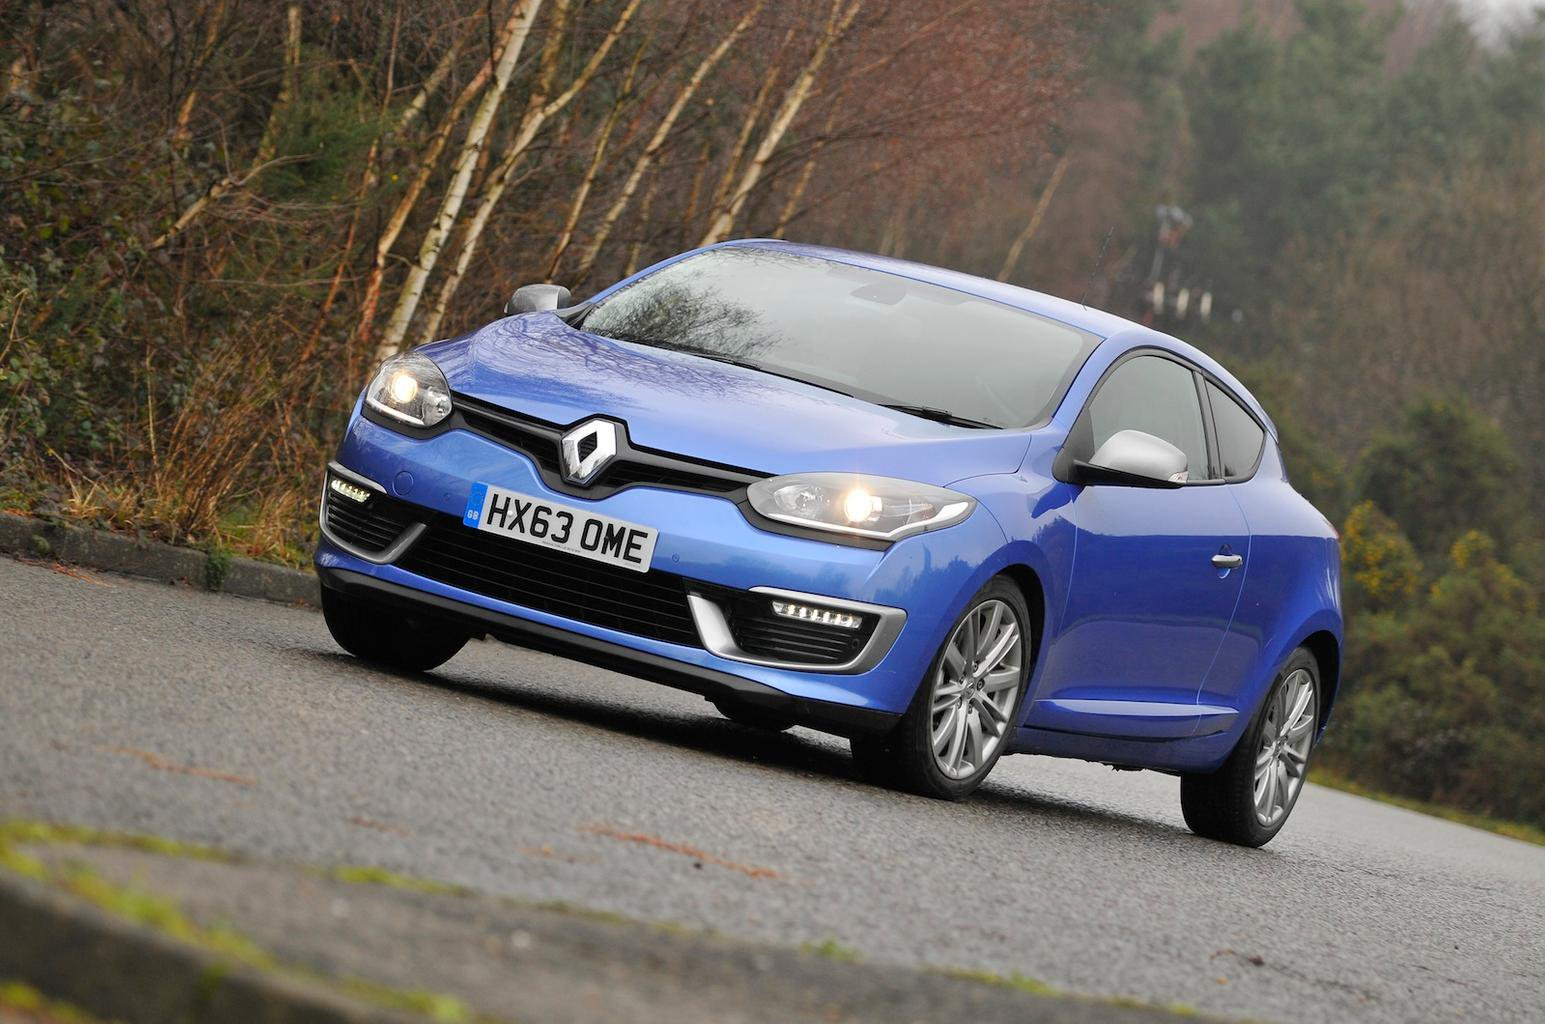 2014 Renault Megane Coupe review